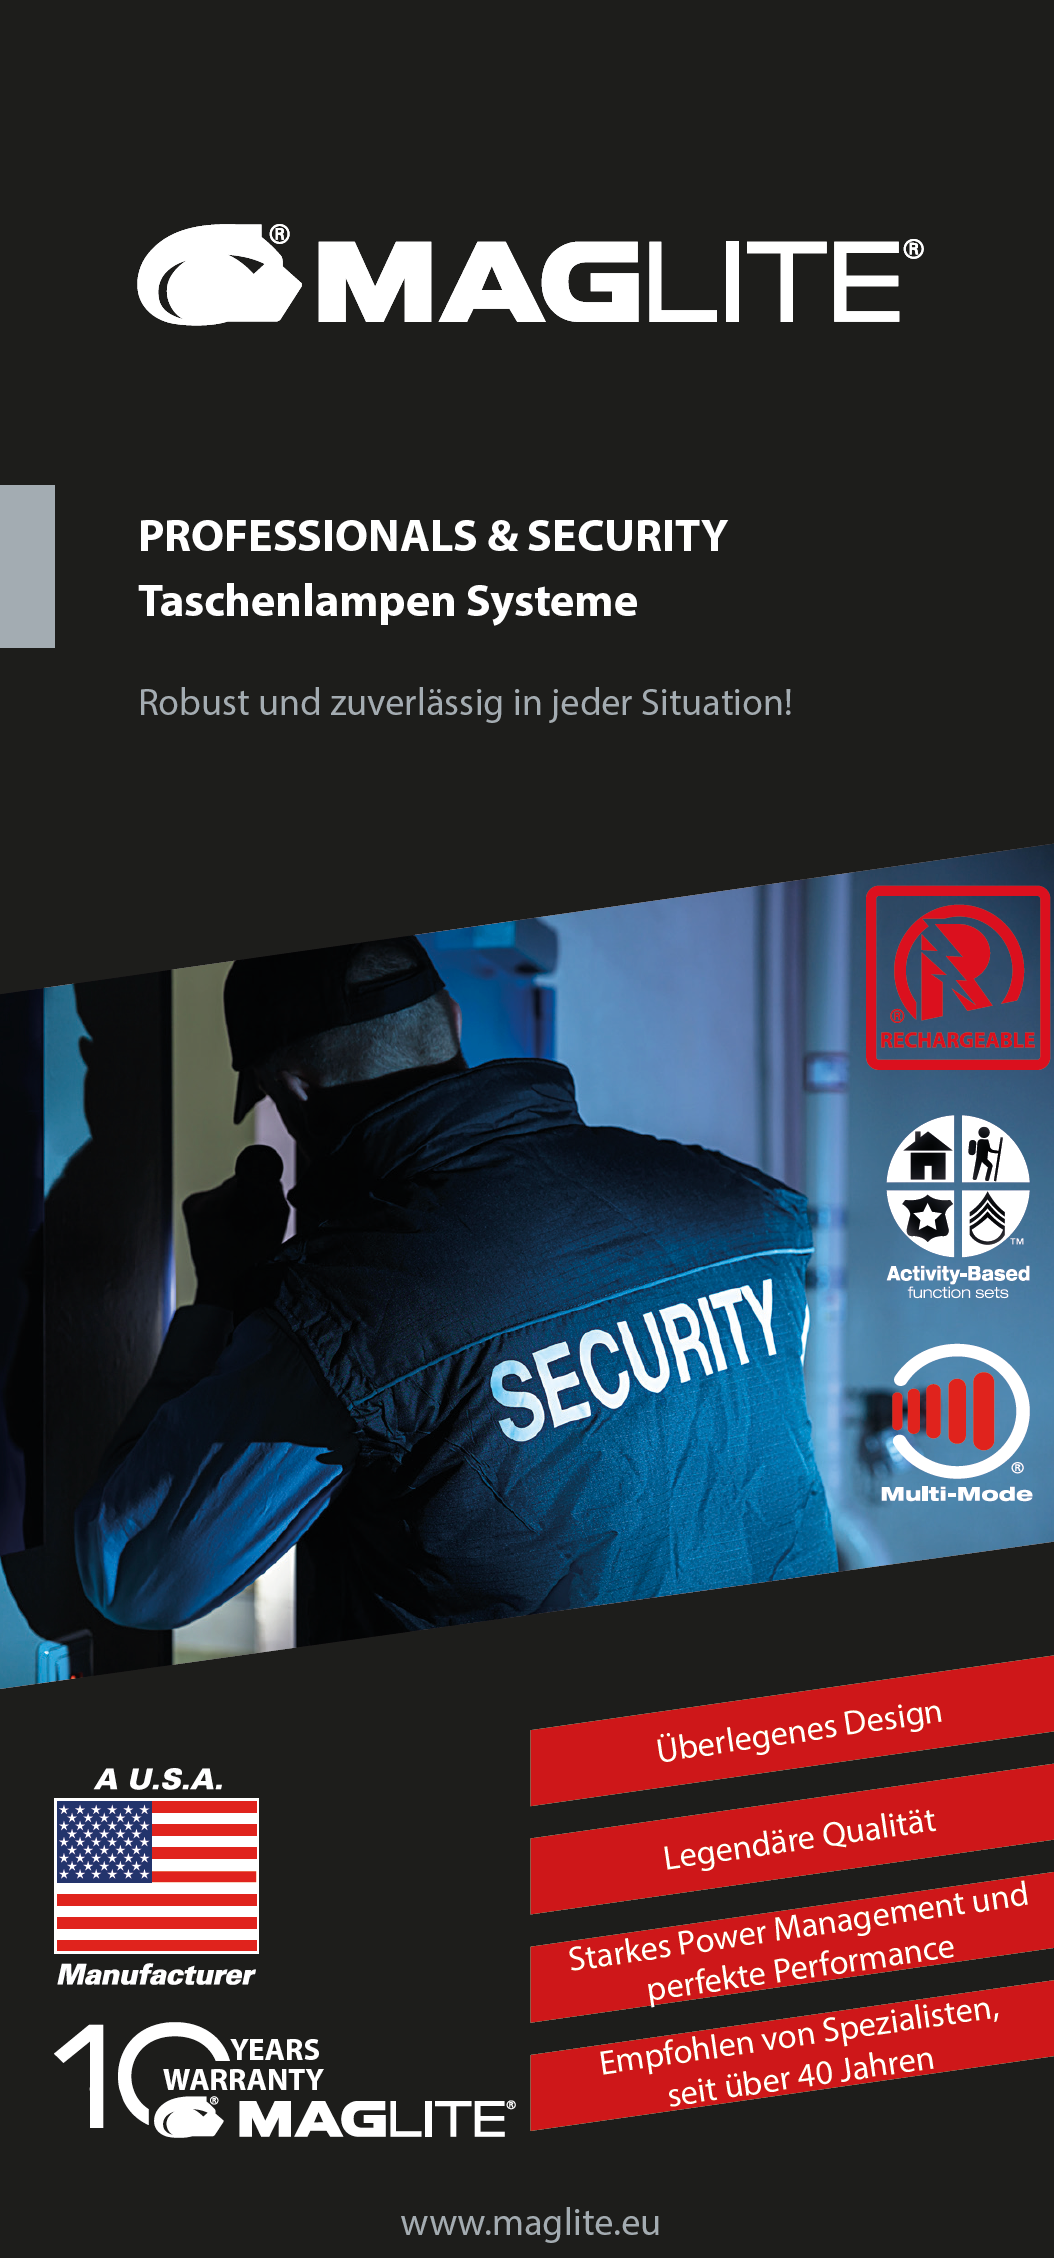 Maglite® - Professional & Security